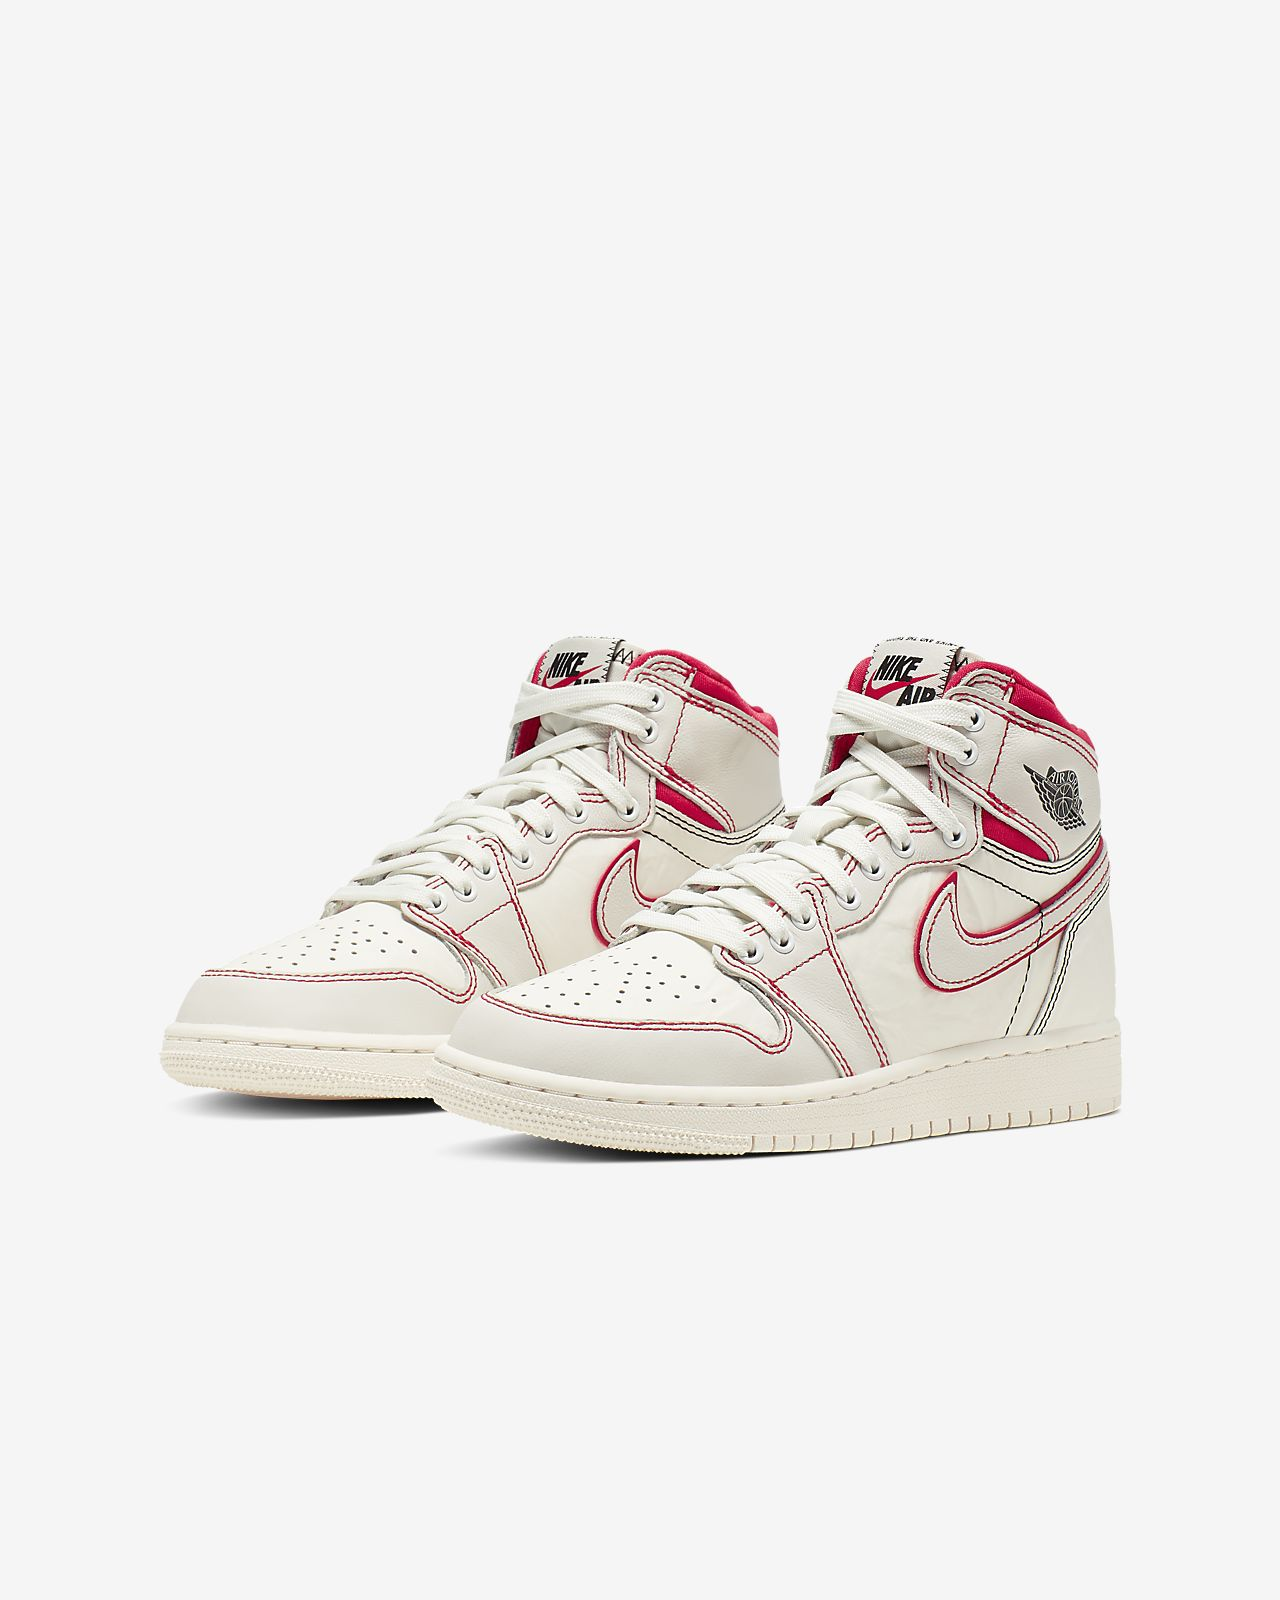 60e5007553c Air Jordan 1 Retro High OG Boys' Shoe. Nike.com